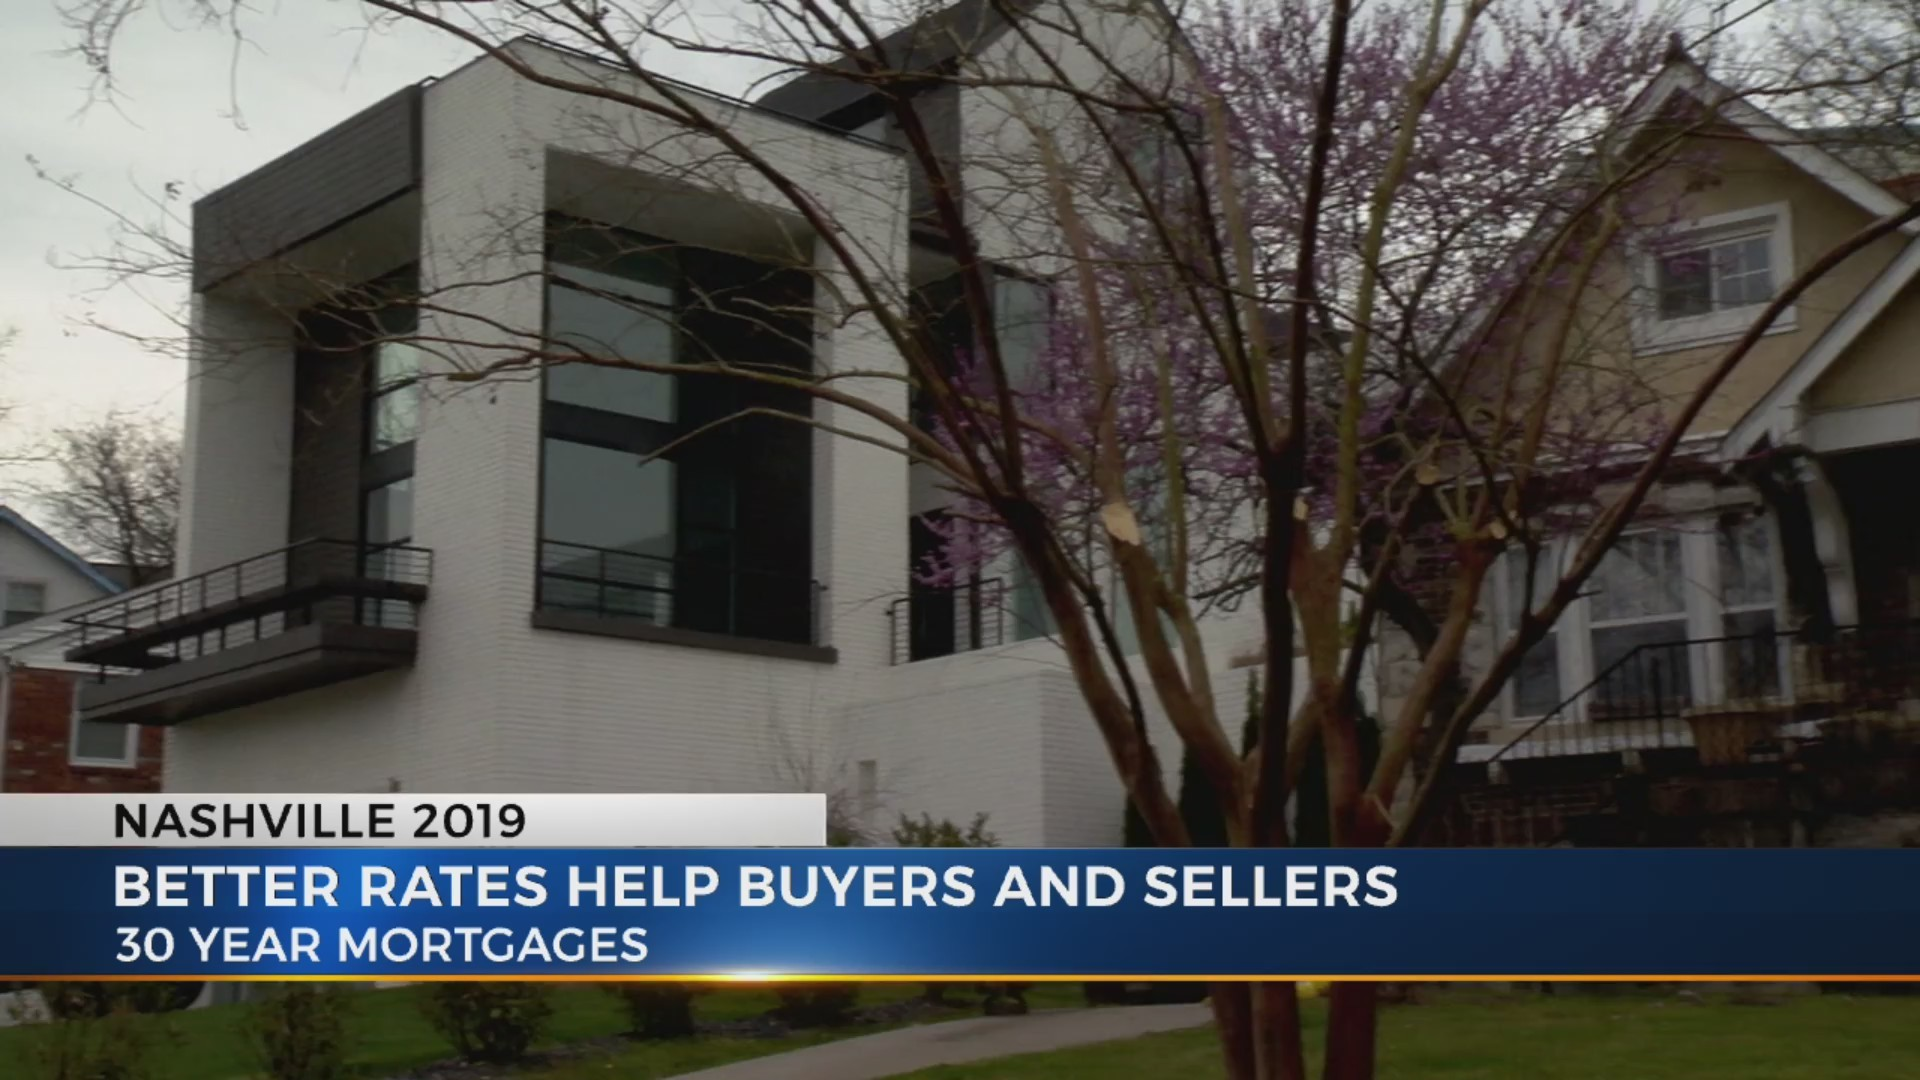 Nashville 2019: Biggest drop in mortgage rates in a decade